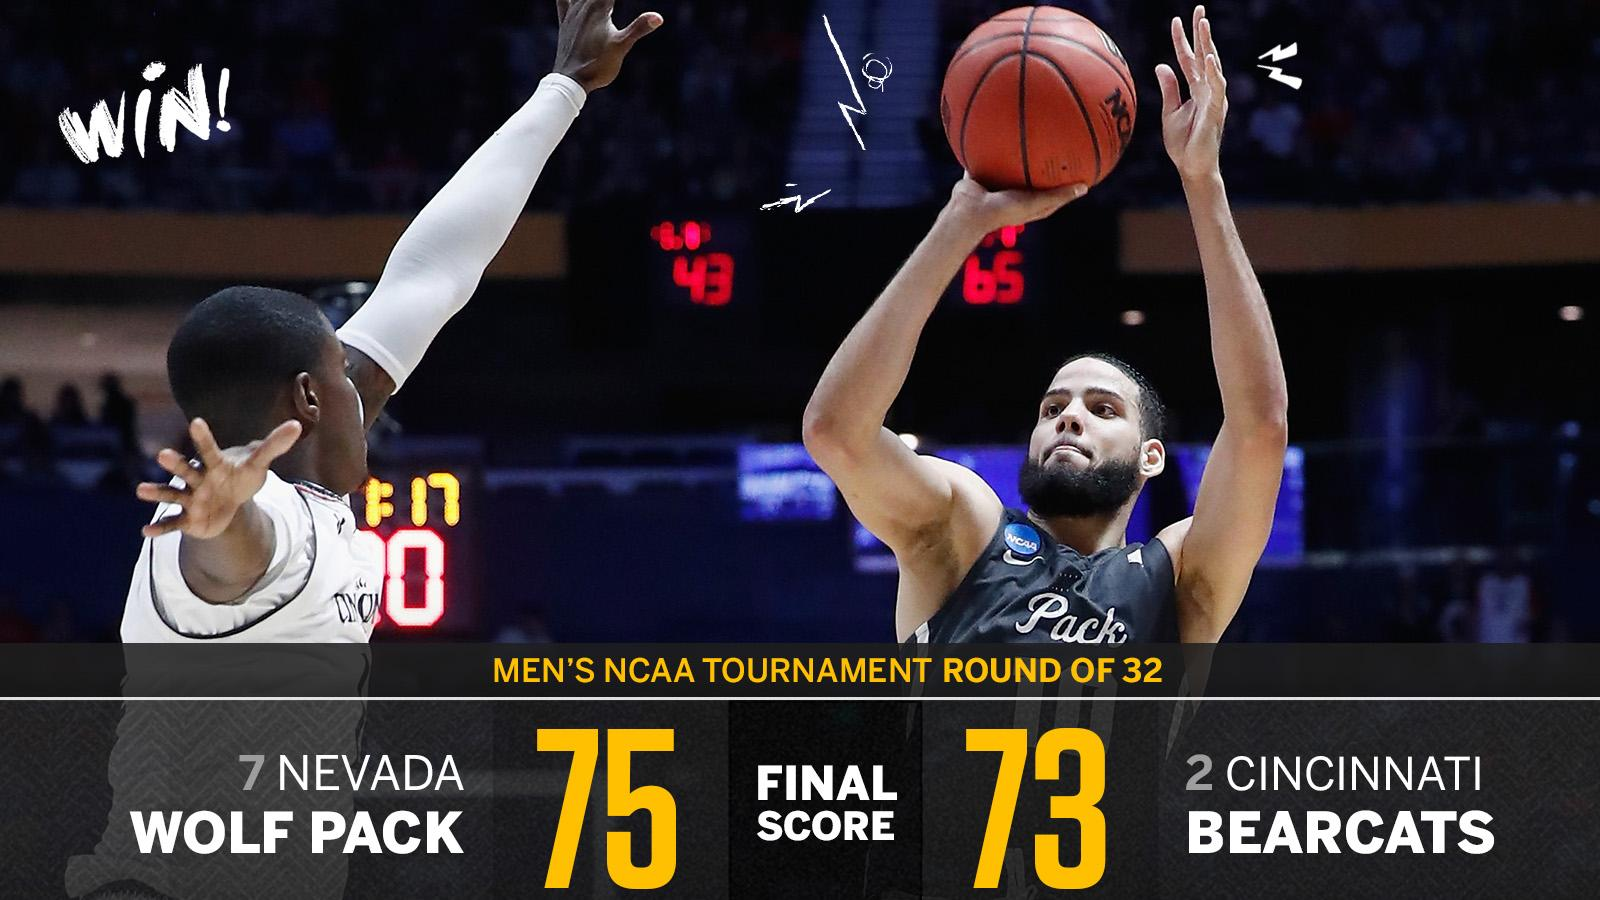 WHAT A COMEBACK!!  Nevada rallies from 22 down in the second half to stun 2nd-seeded Cincinnati. https://t.co/r3aG1lIEOu